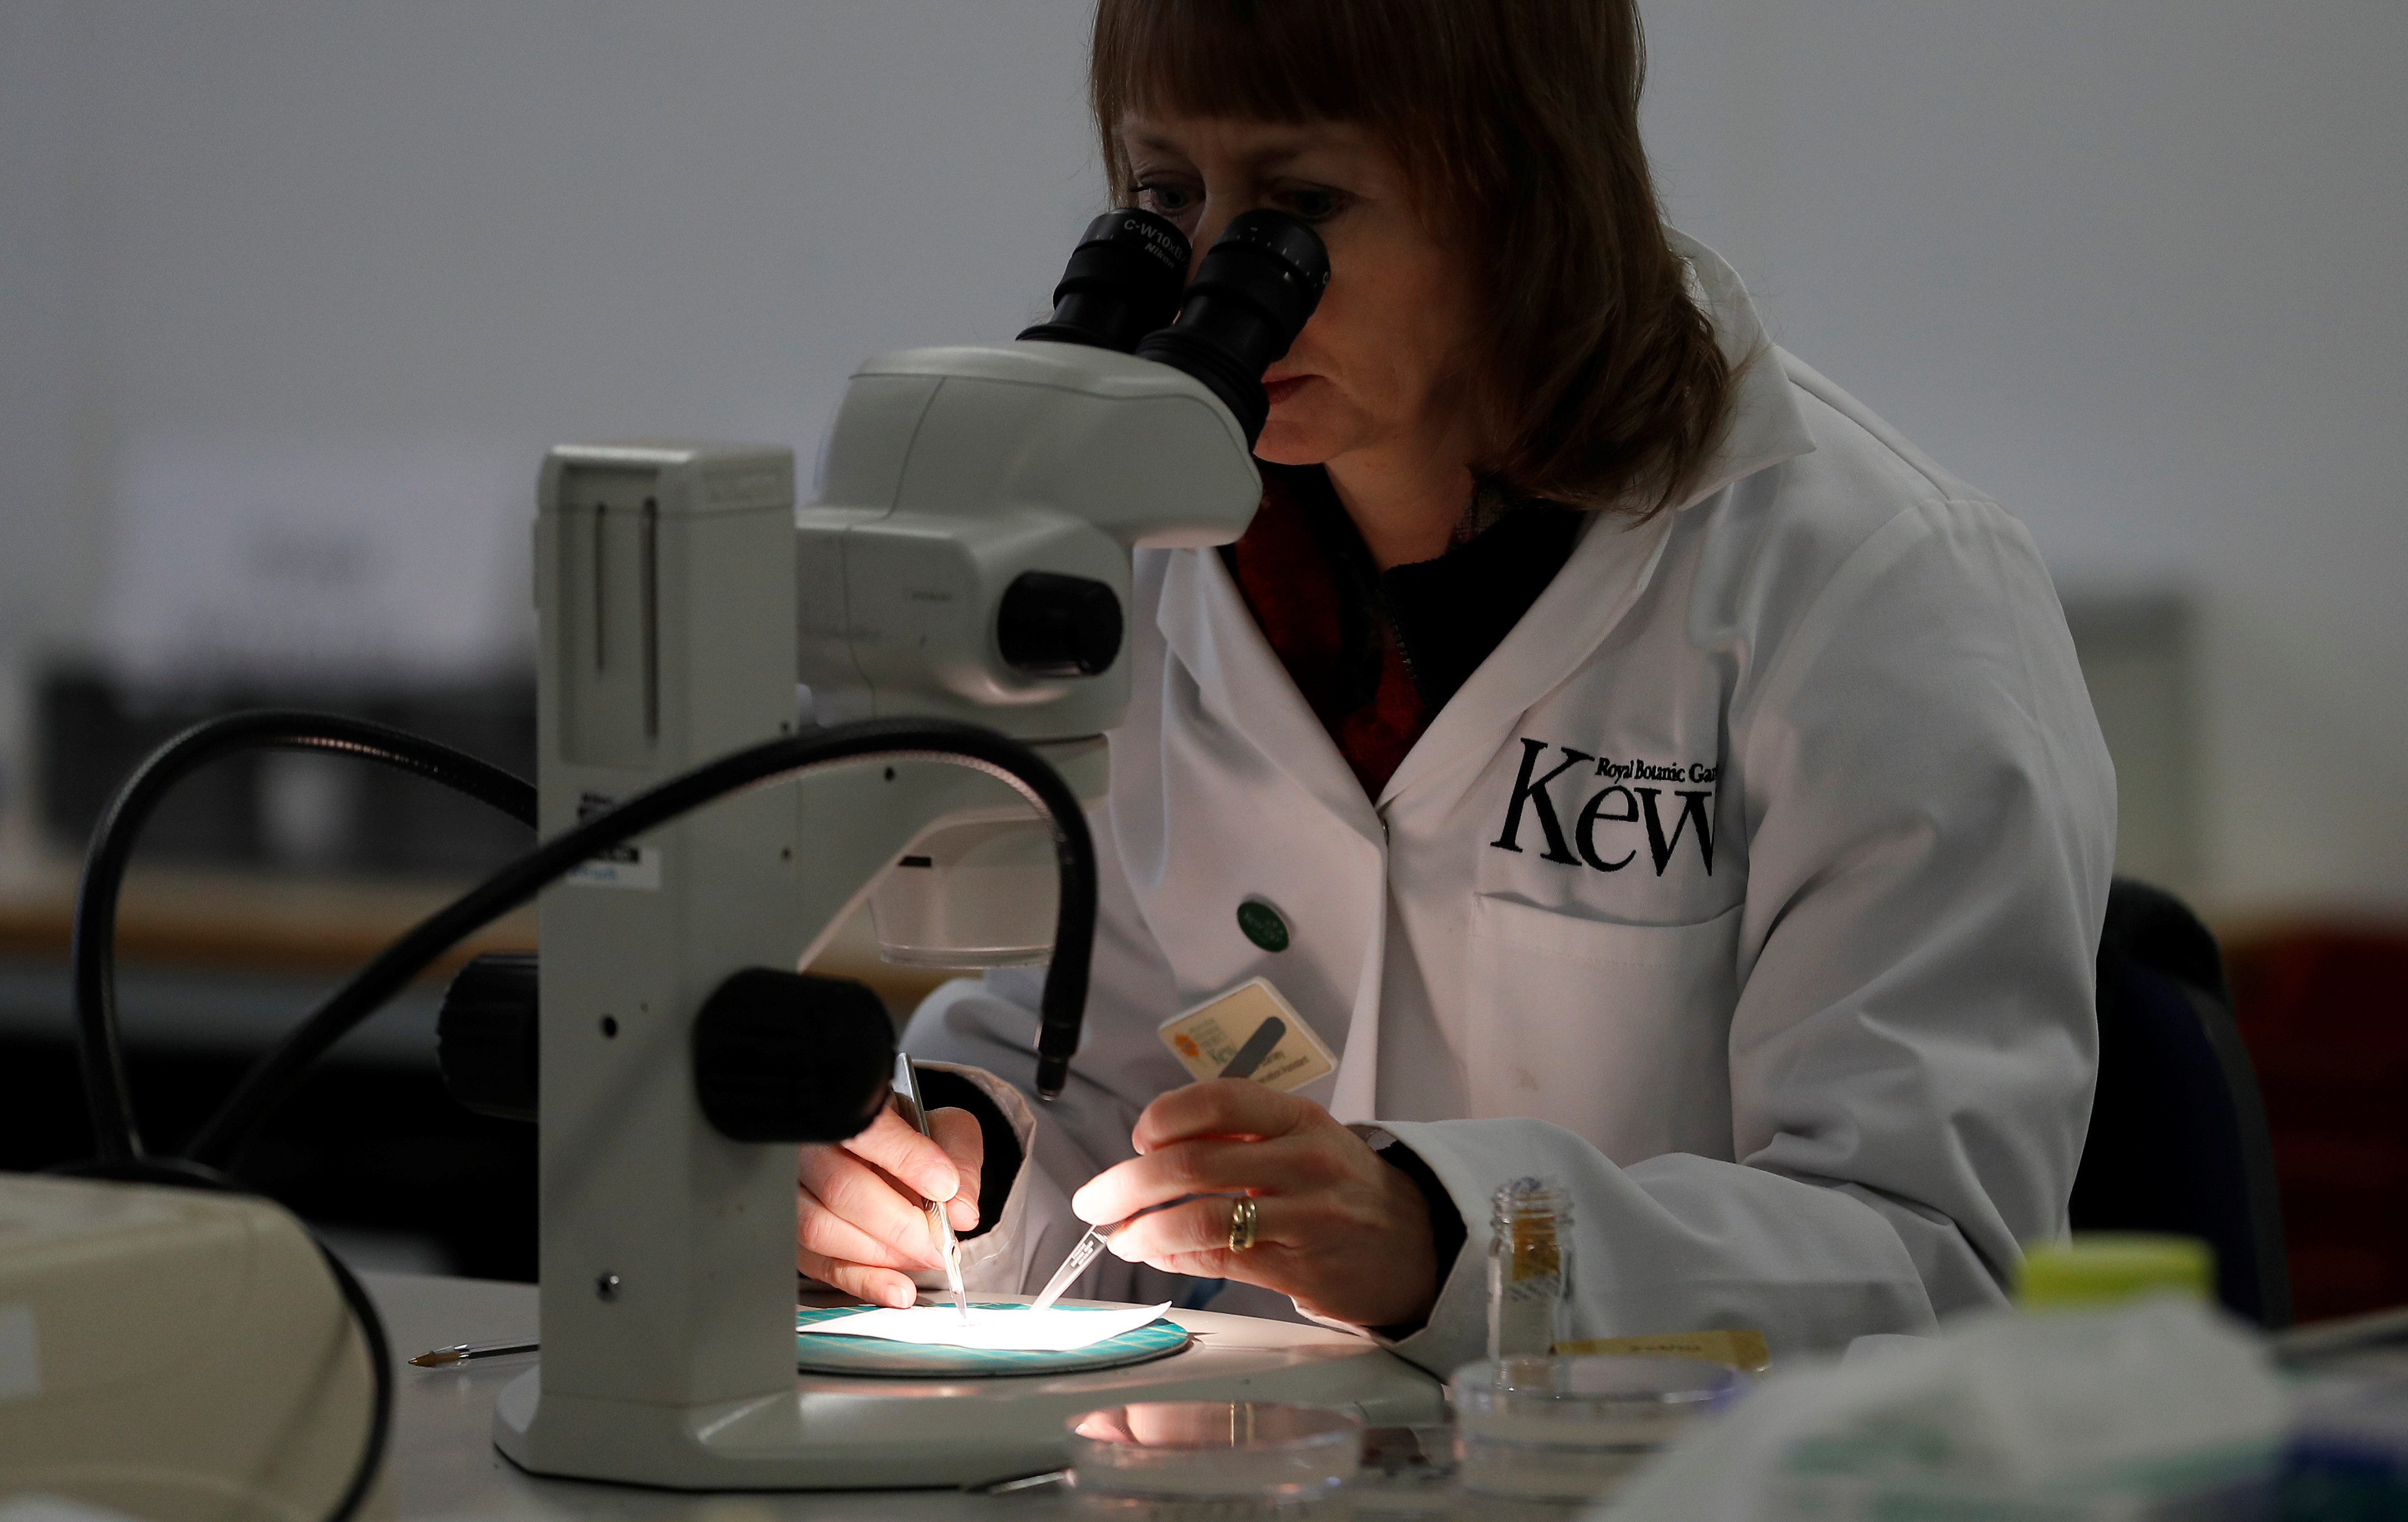 Seed processing assistant Frances Stanley prepares plant seeds for storage at Kew Millennium Seed Bank, in Wakehurst, southern Britain February 7, 2020.  REUTERS/Peter Nicholls - RC2RVE98LZD4